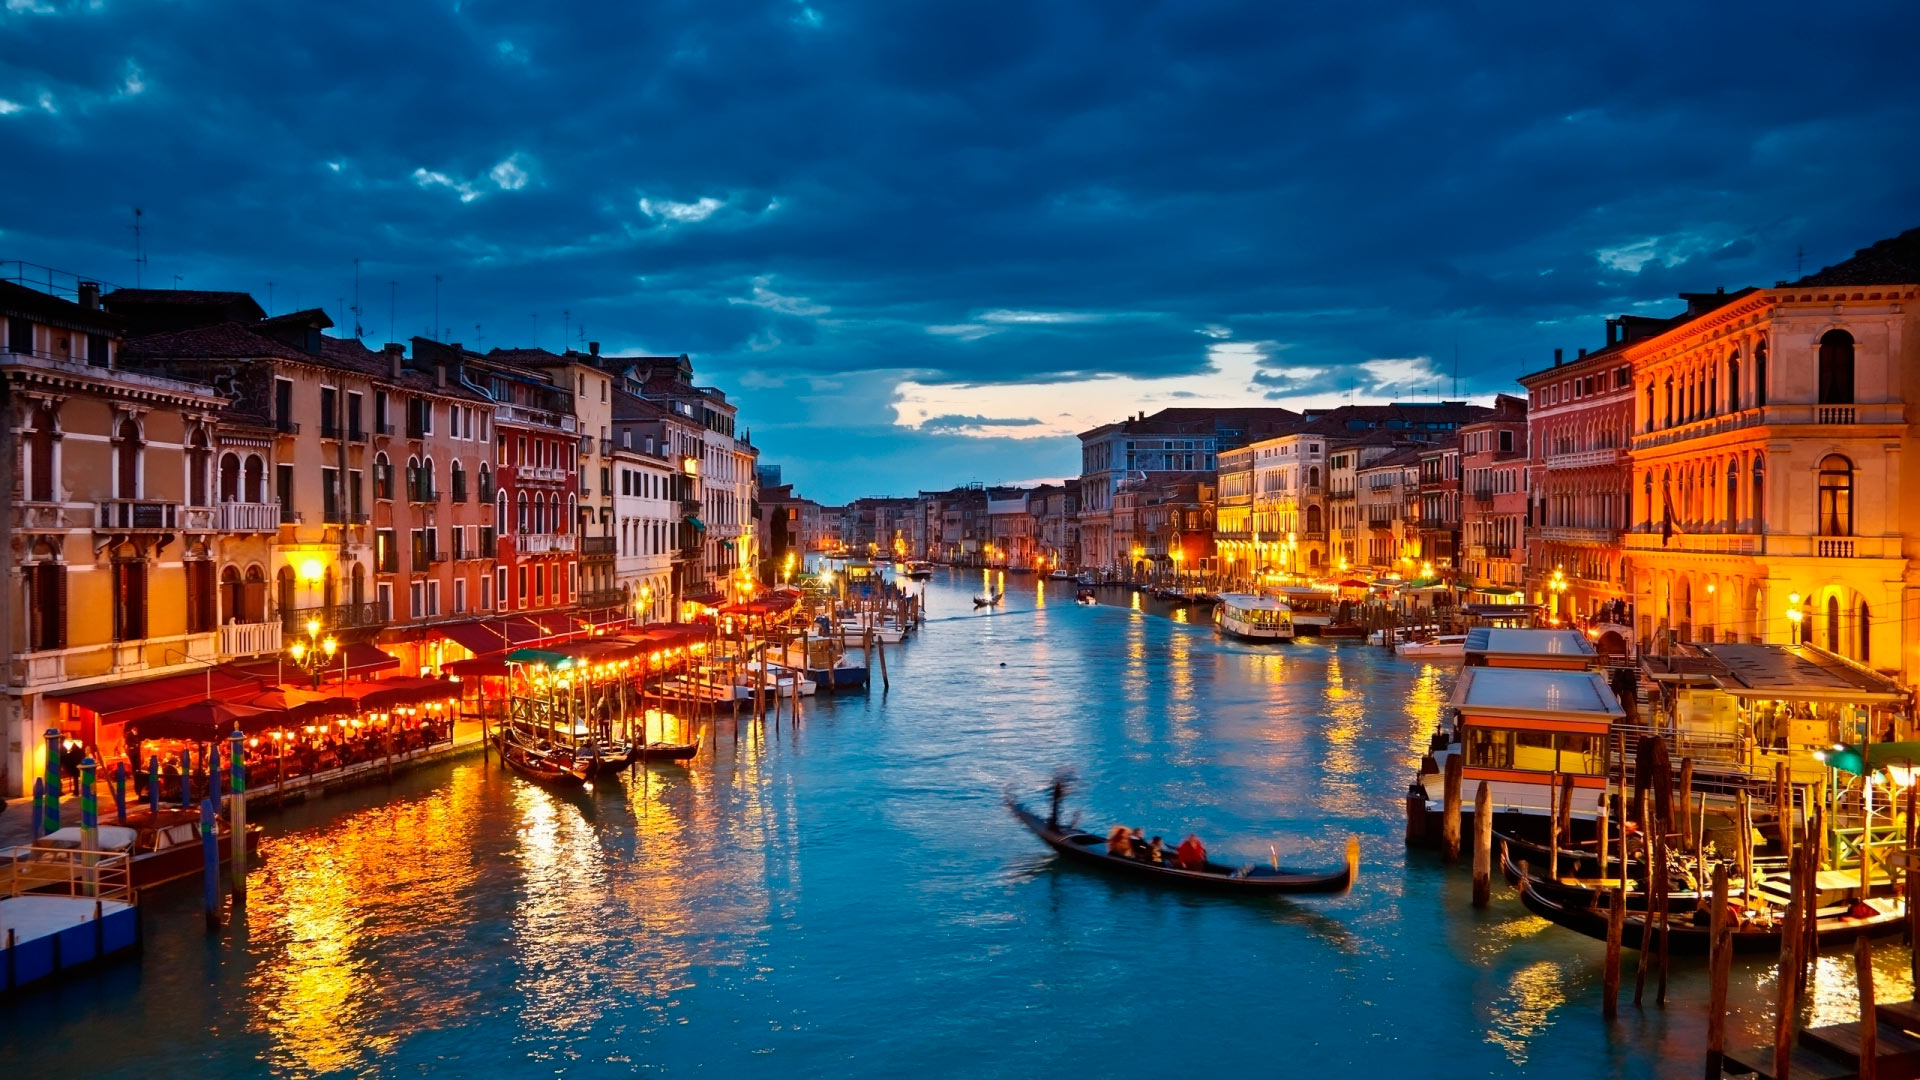 Romantic Venice At Night HD Wallpaper Background Images 1920x1080